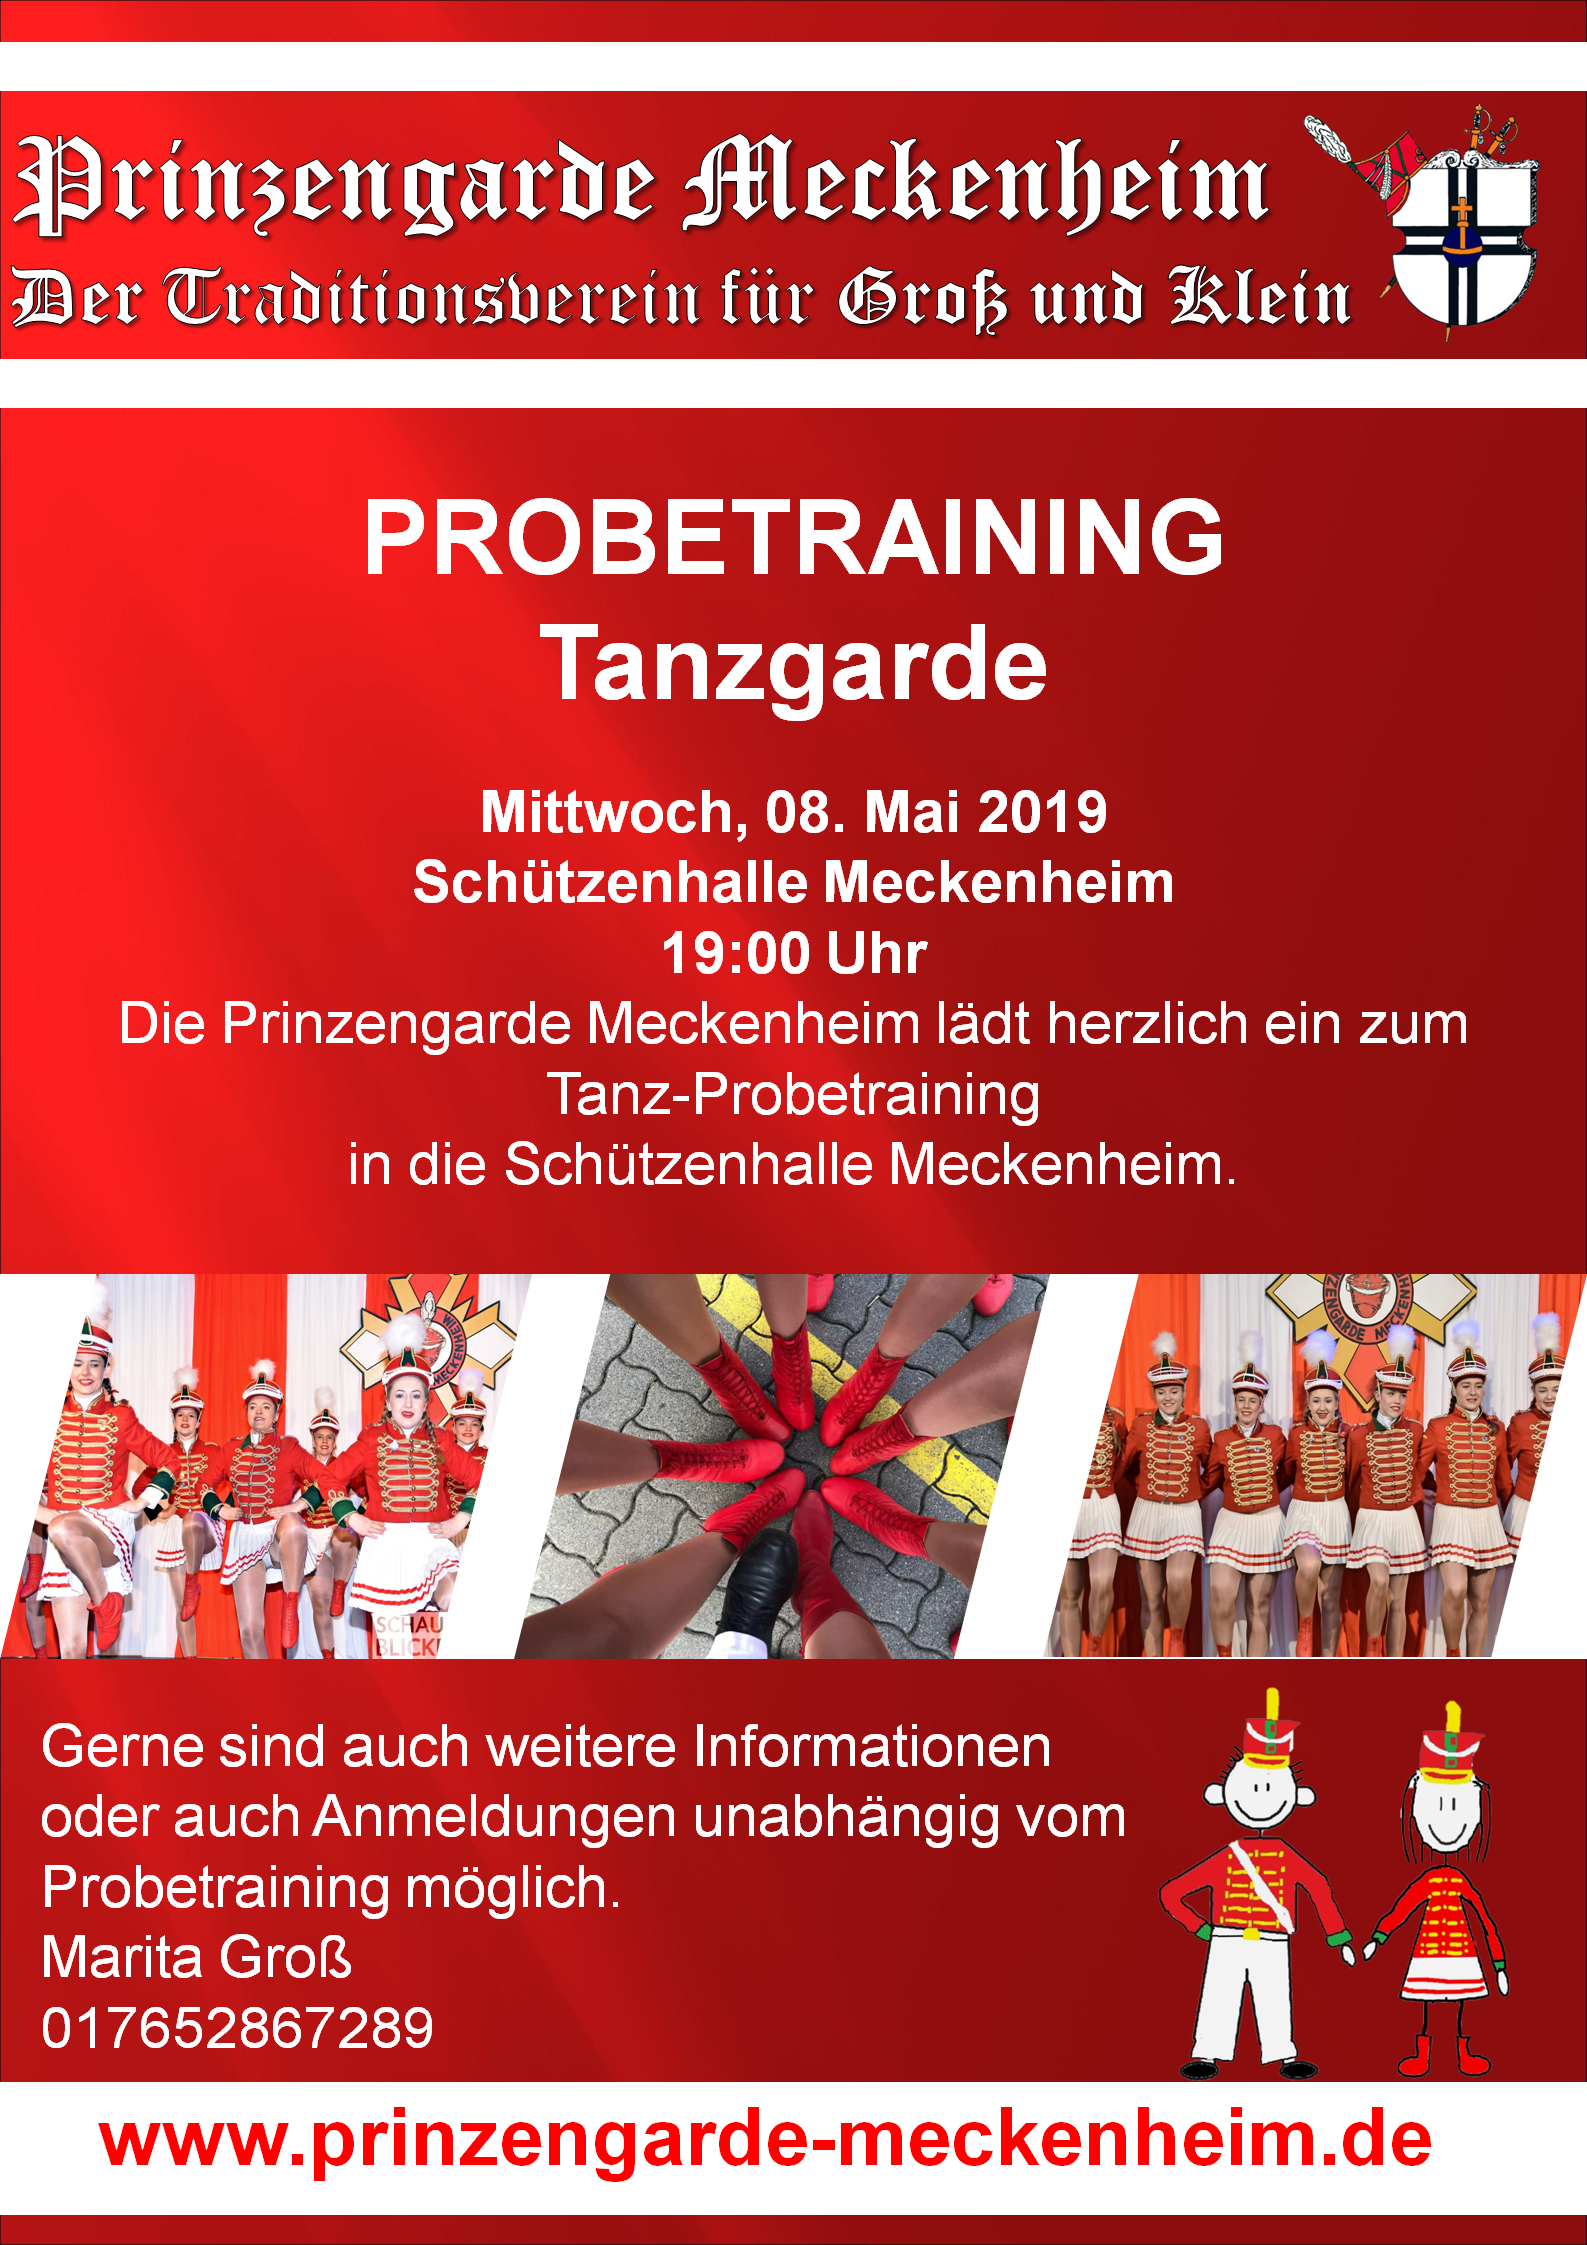 Probetraining Tanzgarde